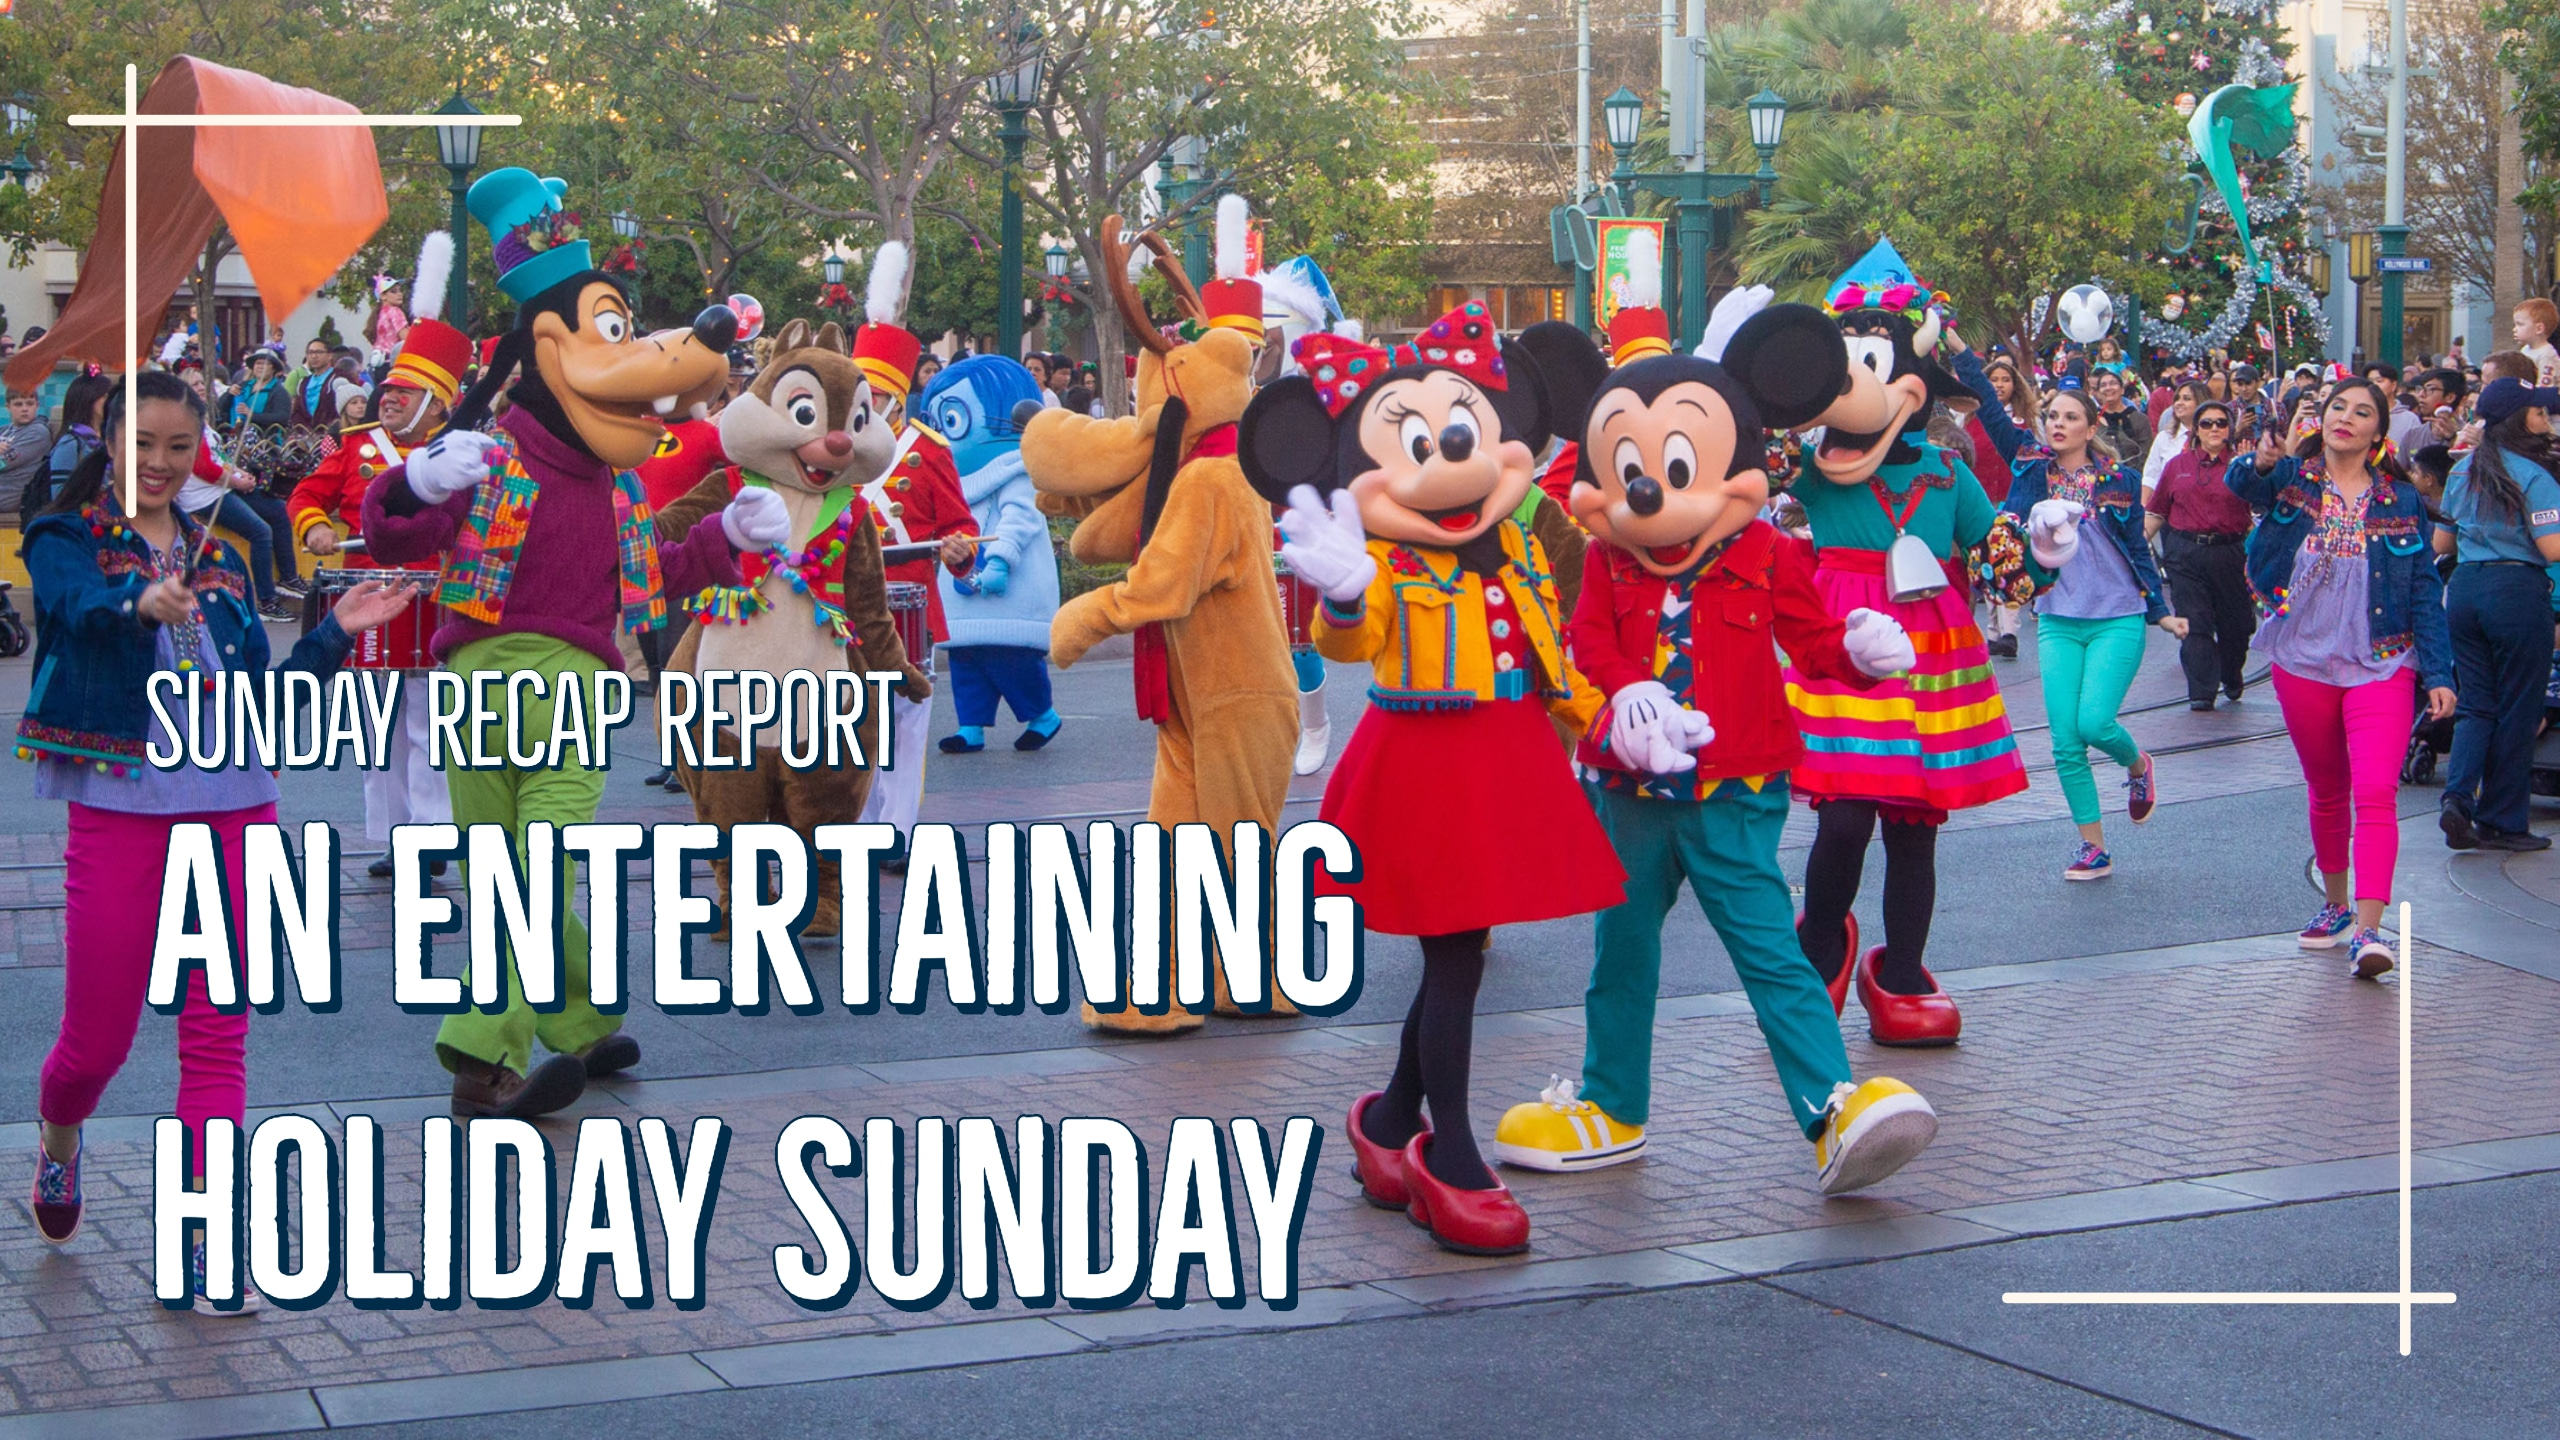 Sunday Recap Report - An Entertaining Holiday Sunday